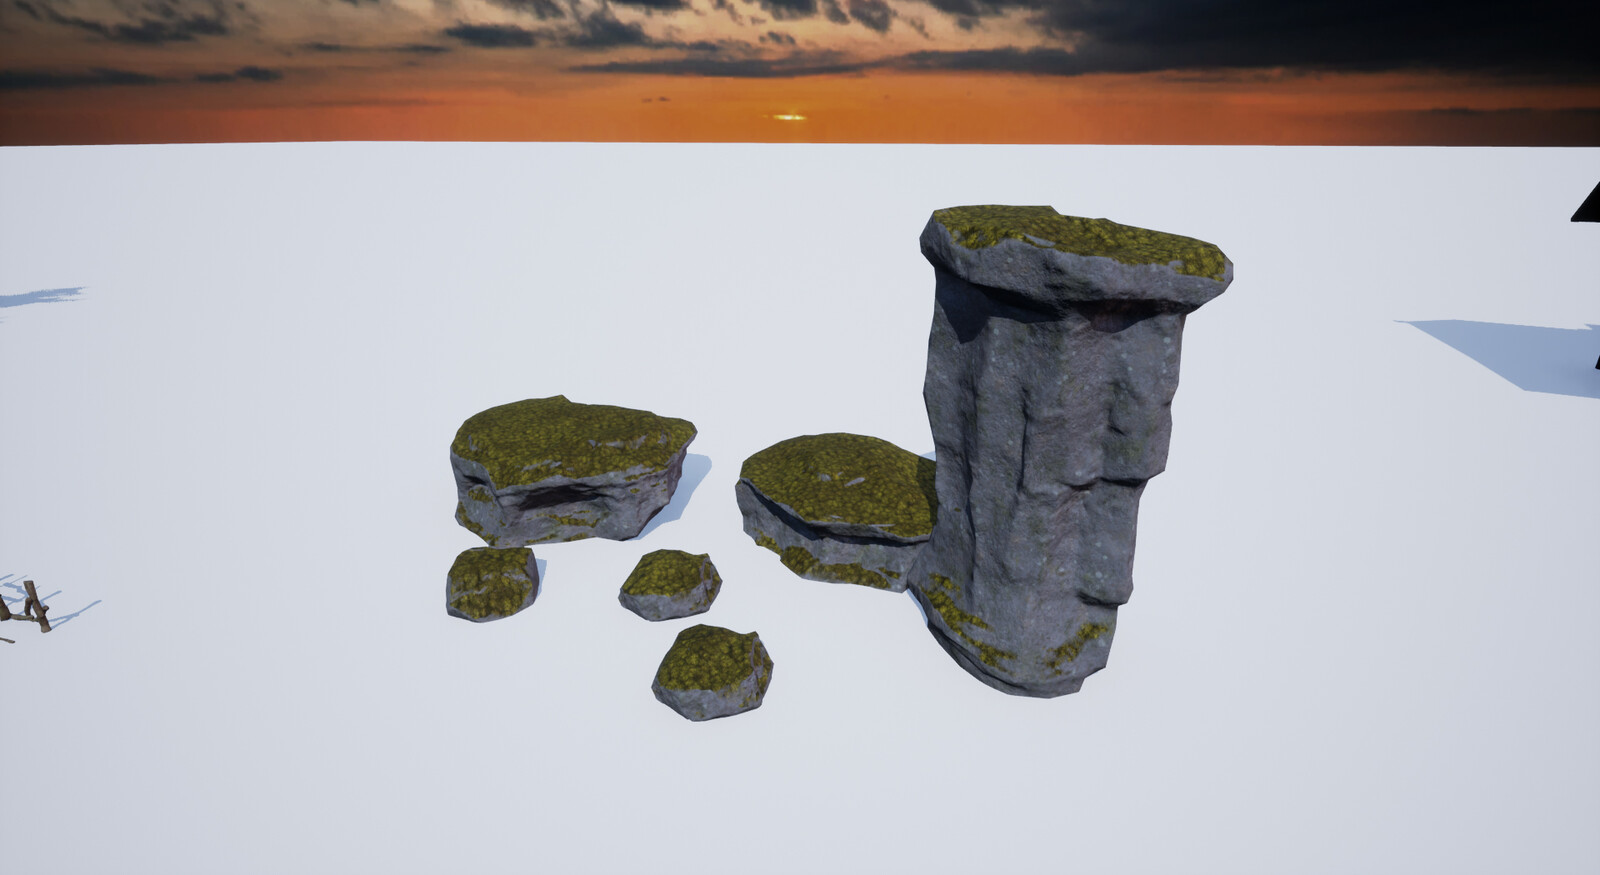 All stones have the same material with an vertex blending shader for the moss.